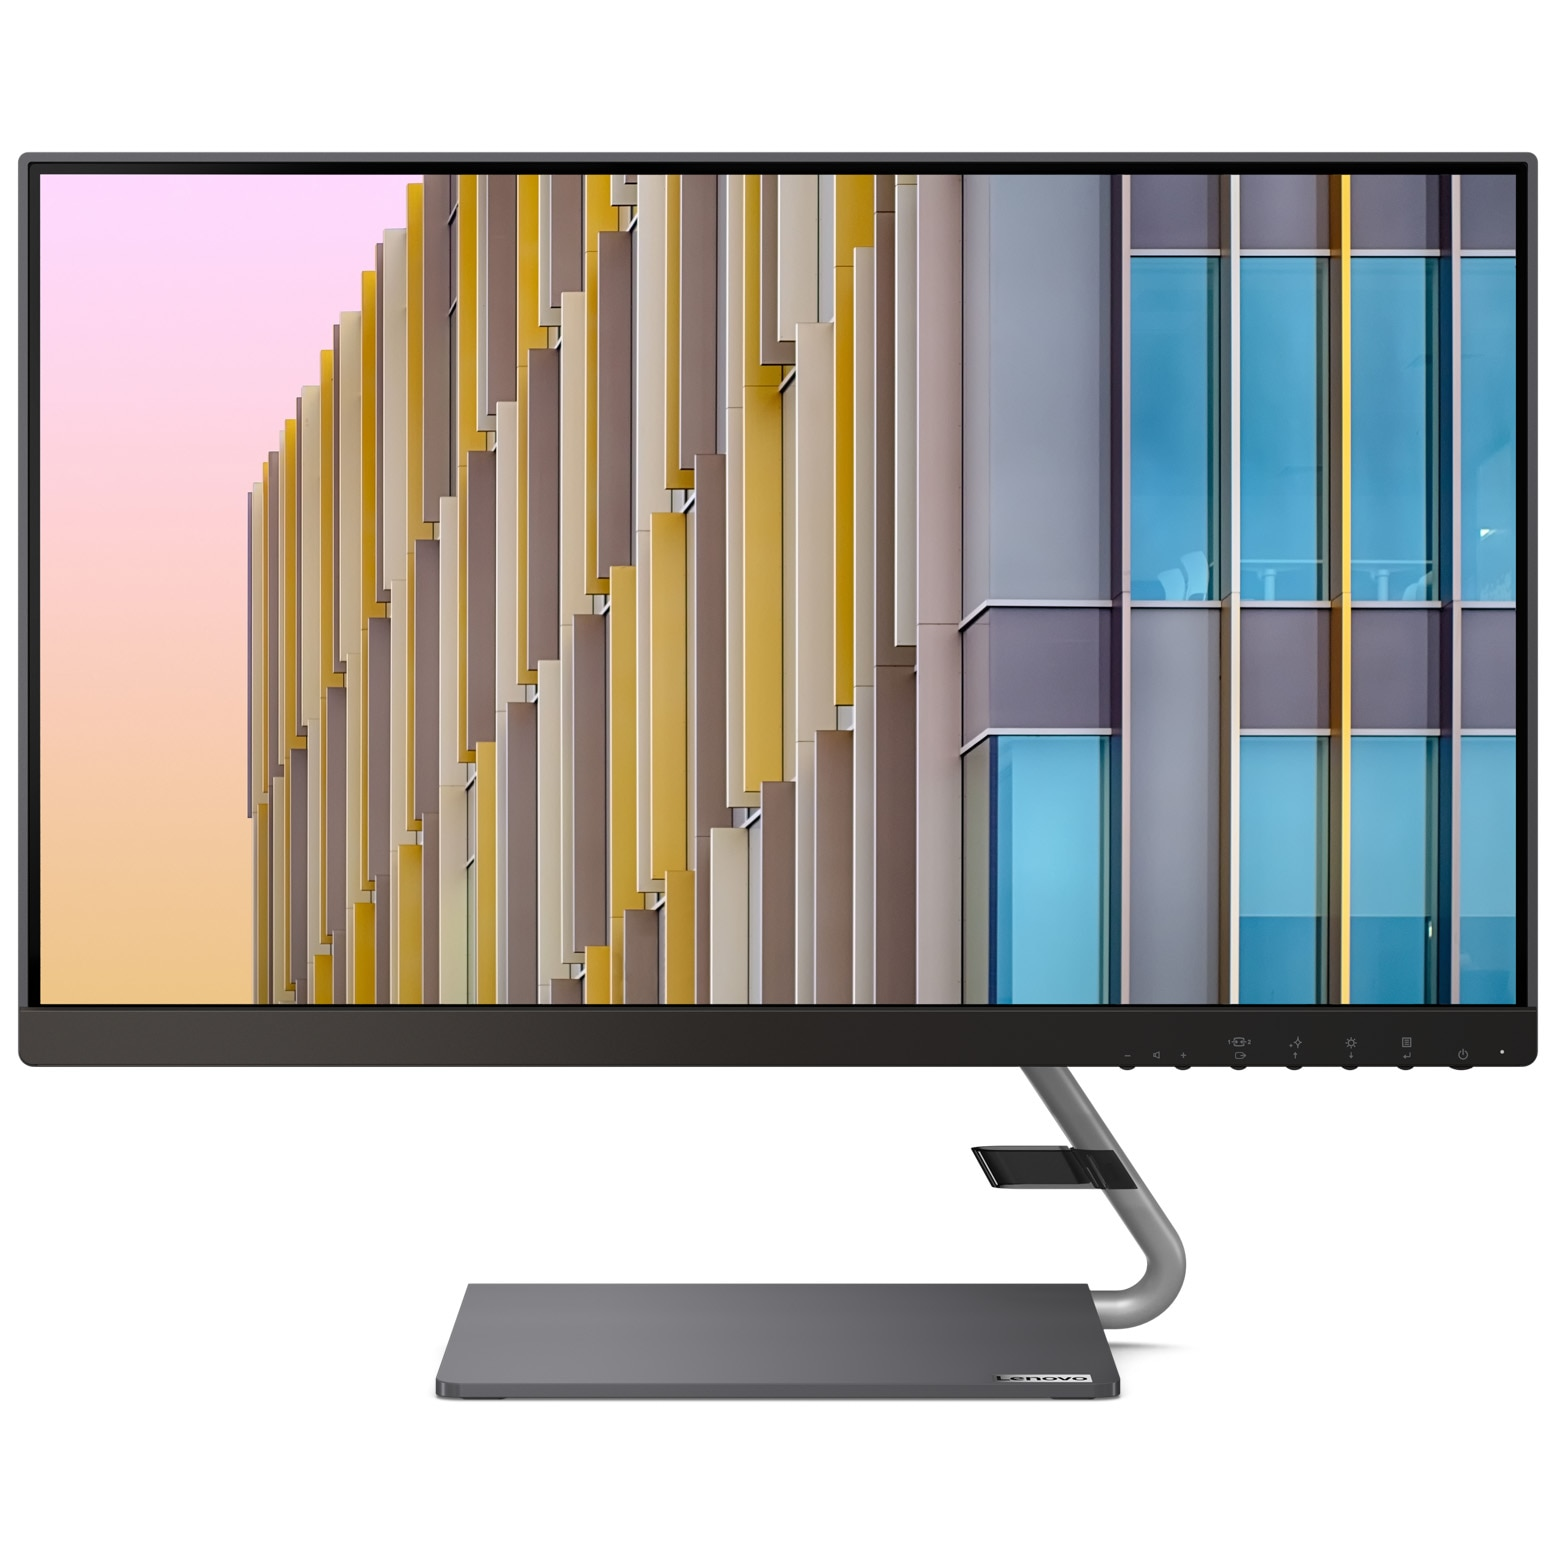 "Fotografie Monitor LED IPS Lenovo, 23.8"", 75 Hz, 4 ms ,HDMI+USB Type-C 3-side borderless with speakers (2 x 3W) - Raven Black / Iron Grey Stand, Q24h-10"